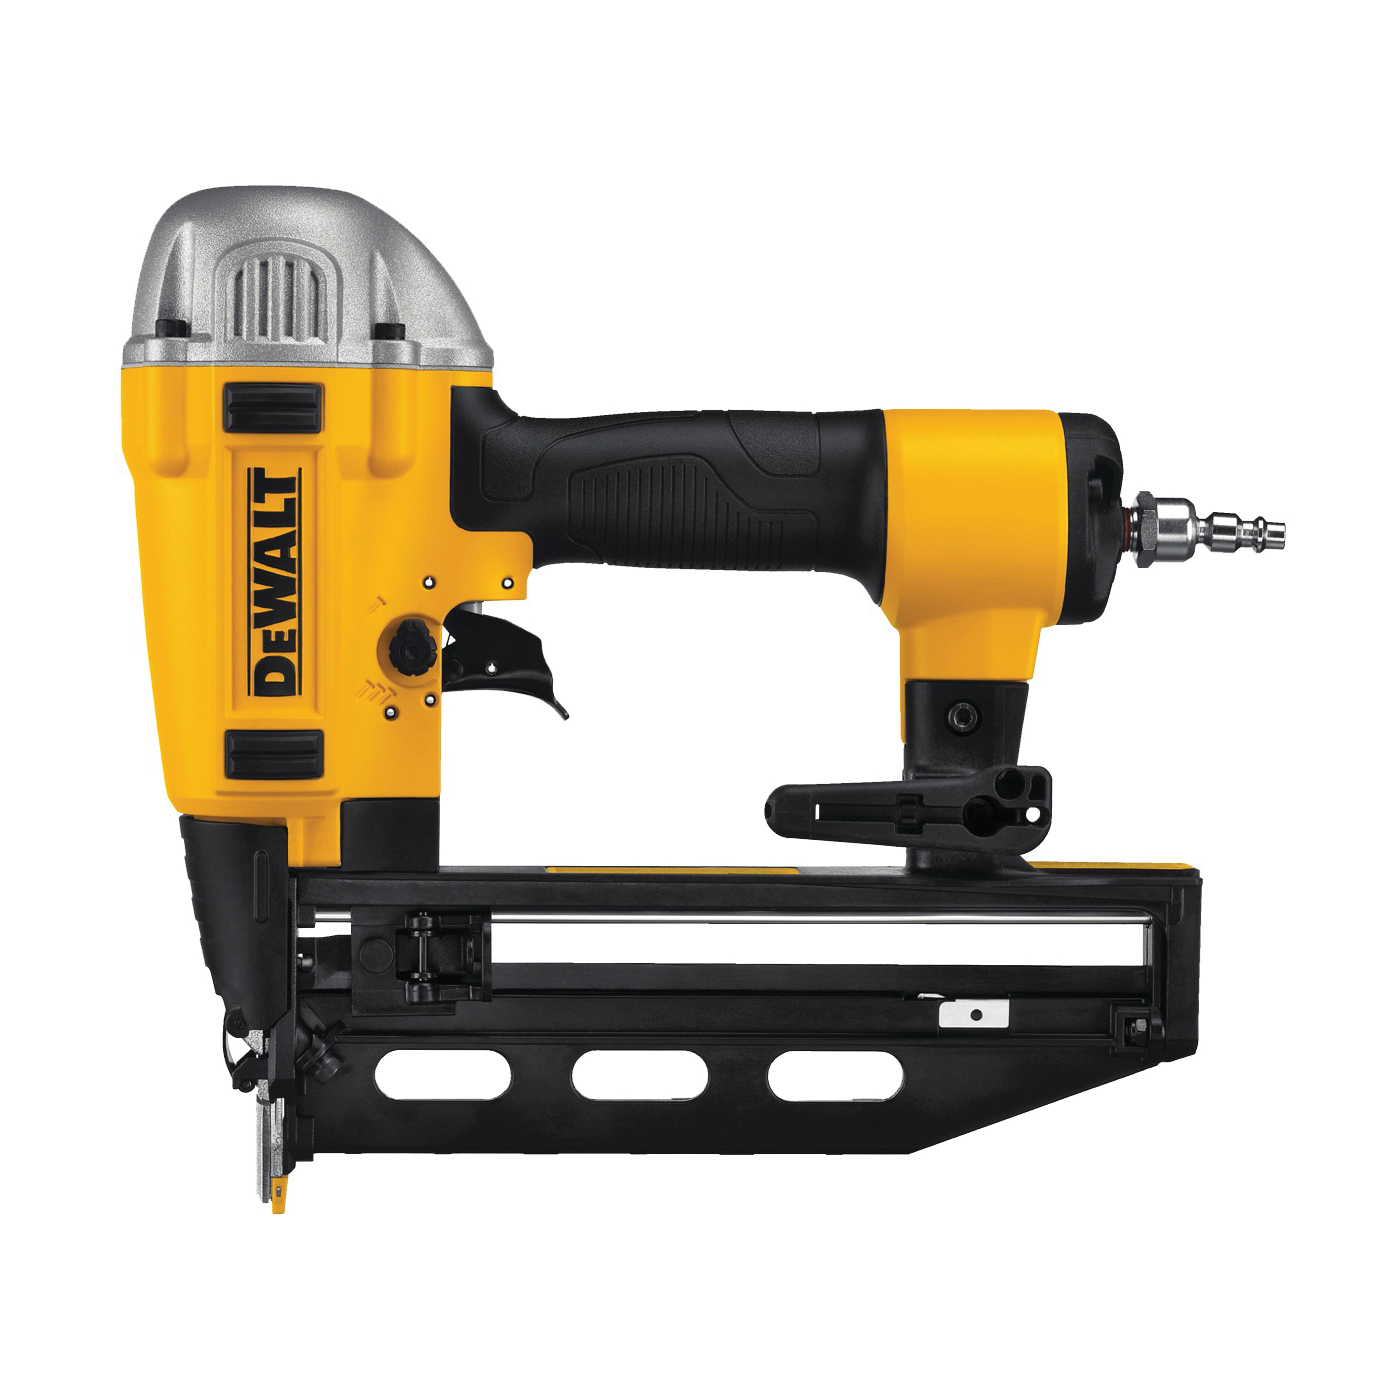 Picture of DeWALT PRECISION POINT DWFP71917 Finish Nailer, 100 Magazine, Glue Collation